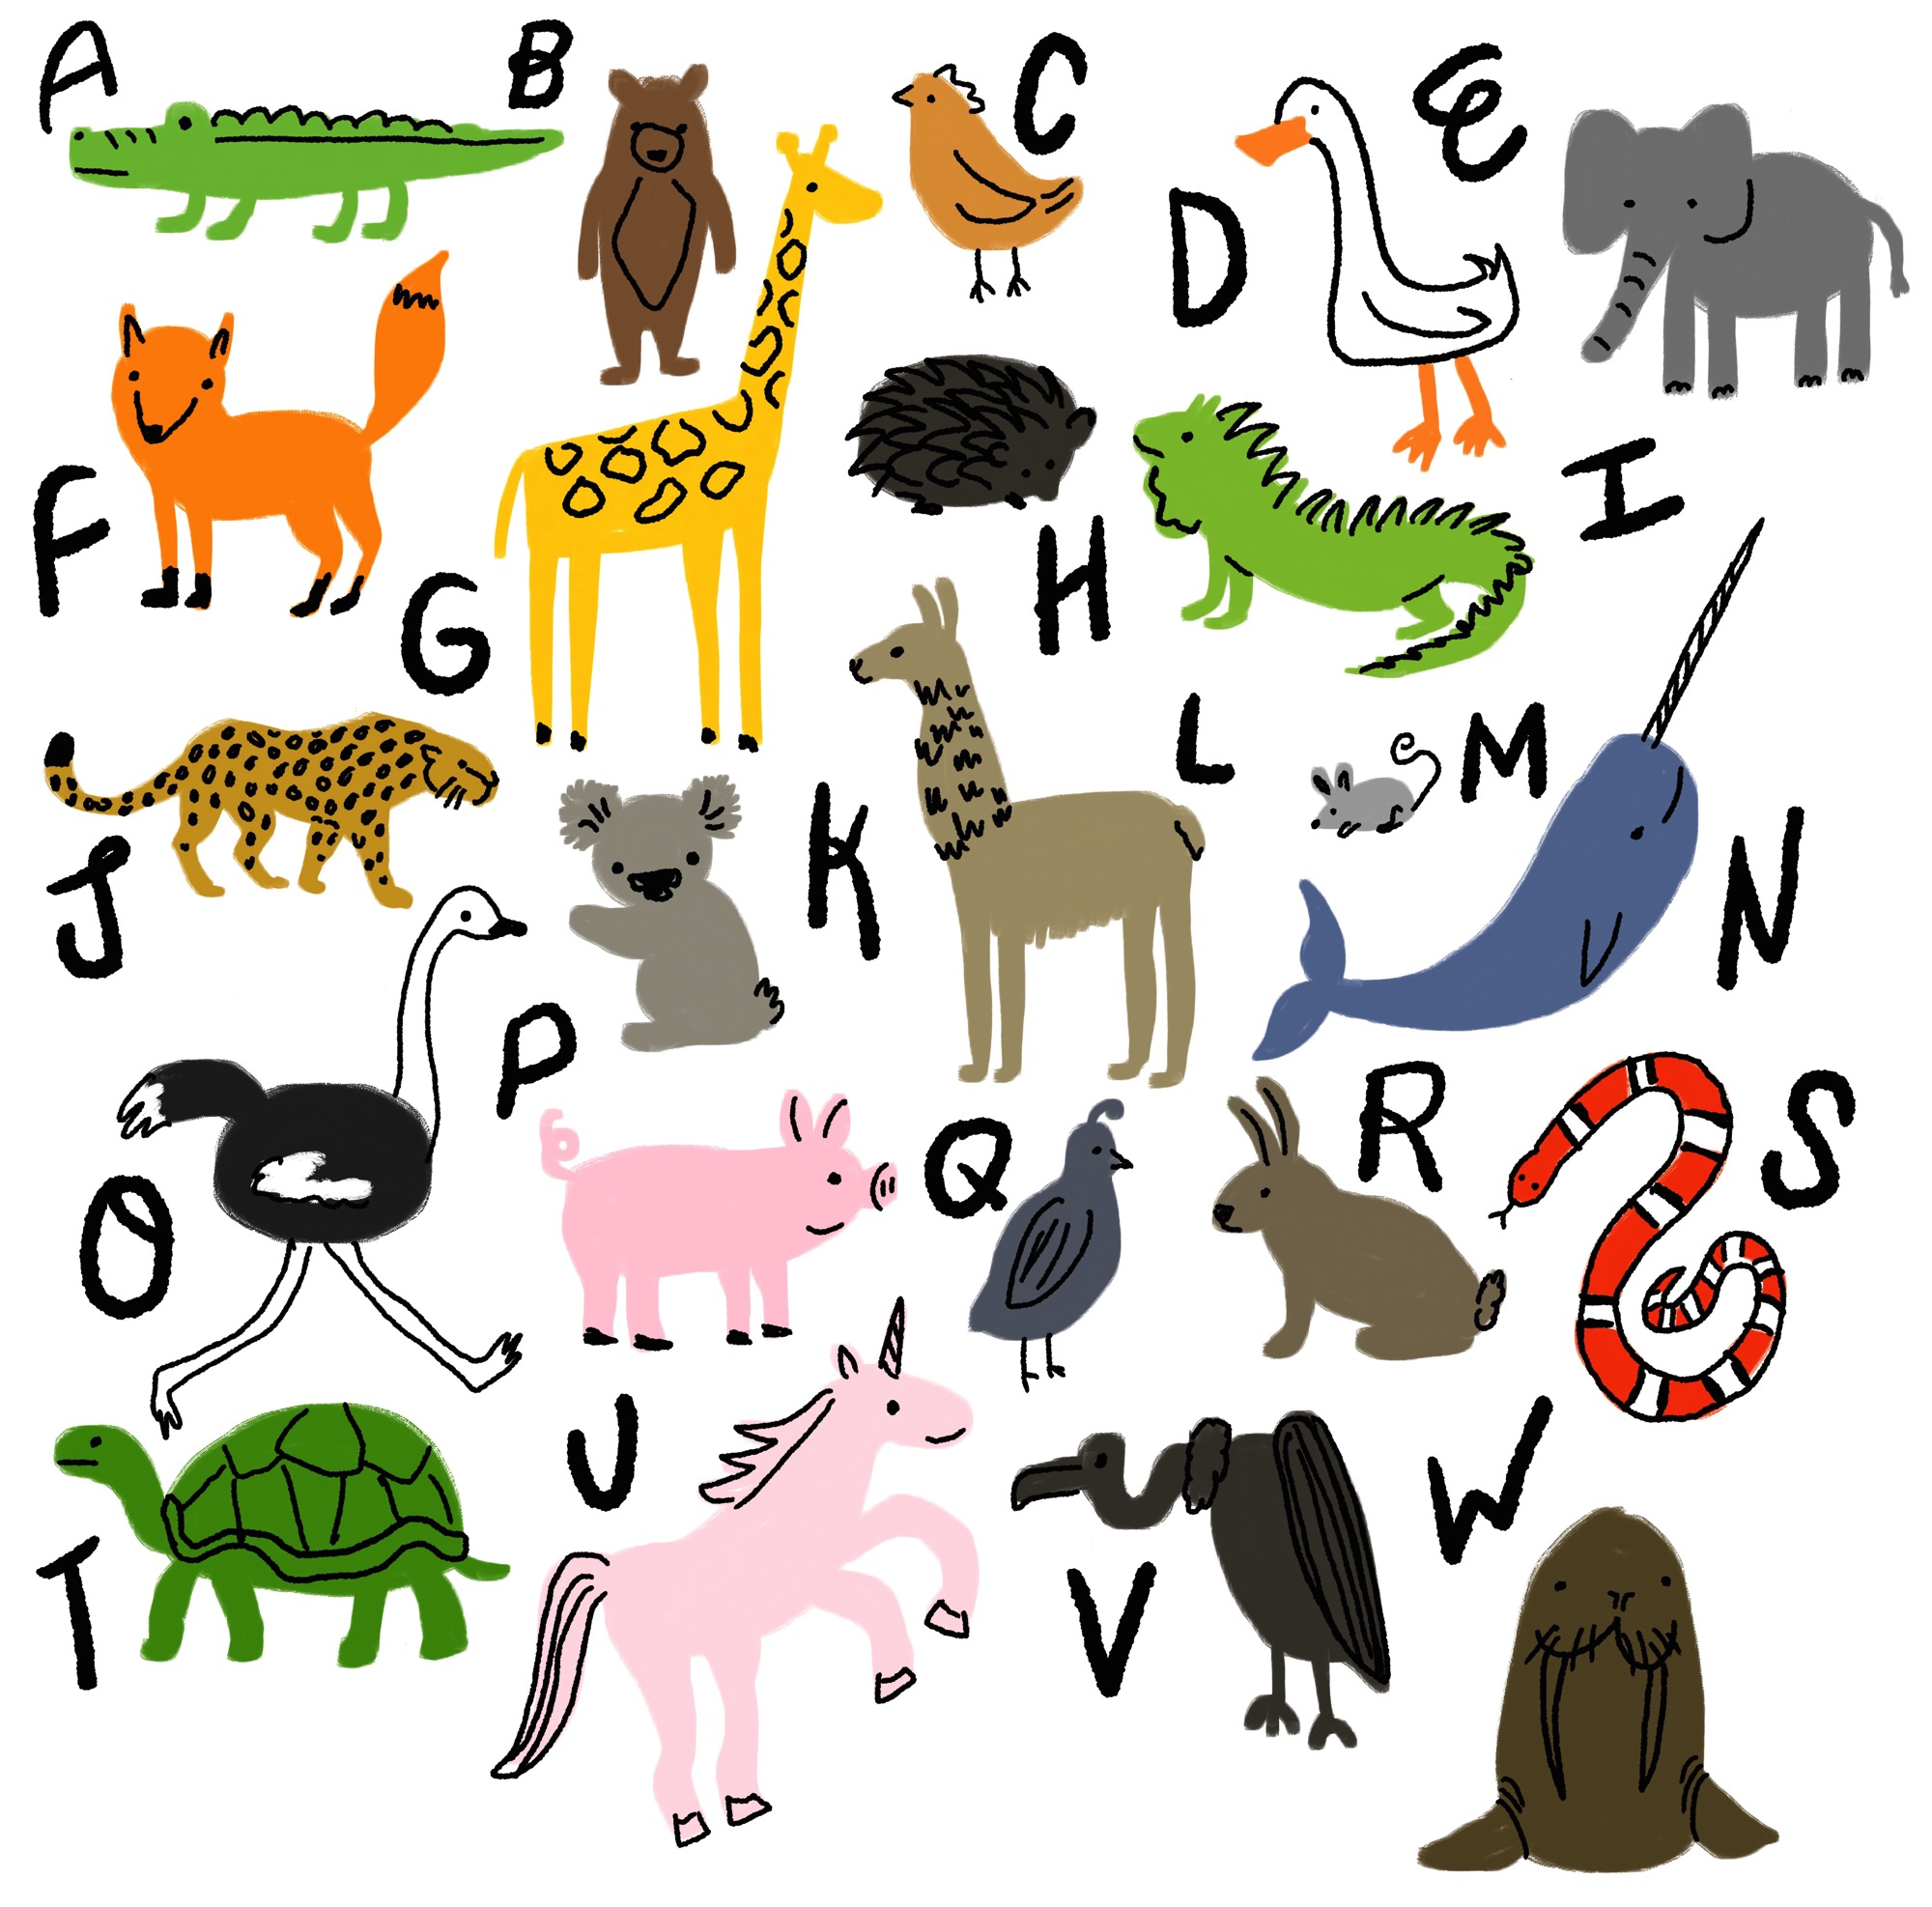 Incomplete animal alphabet